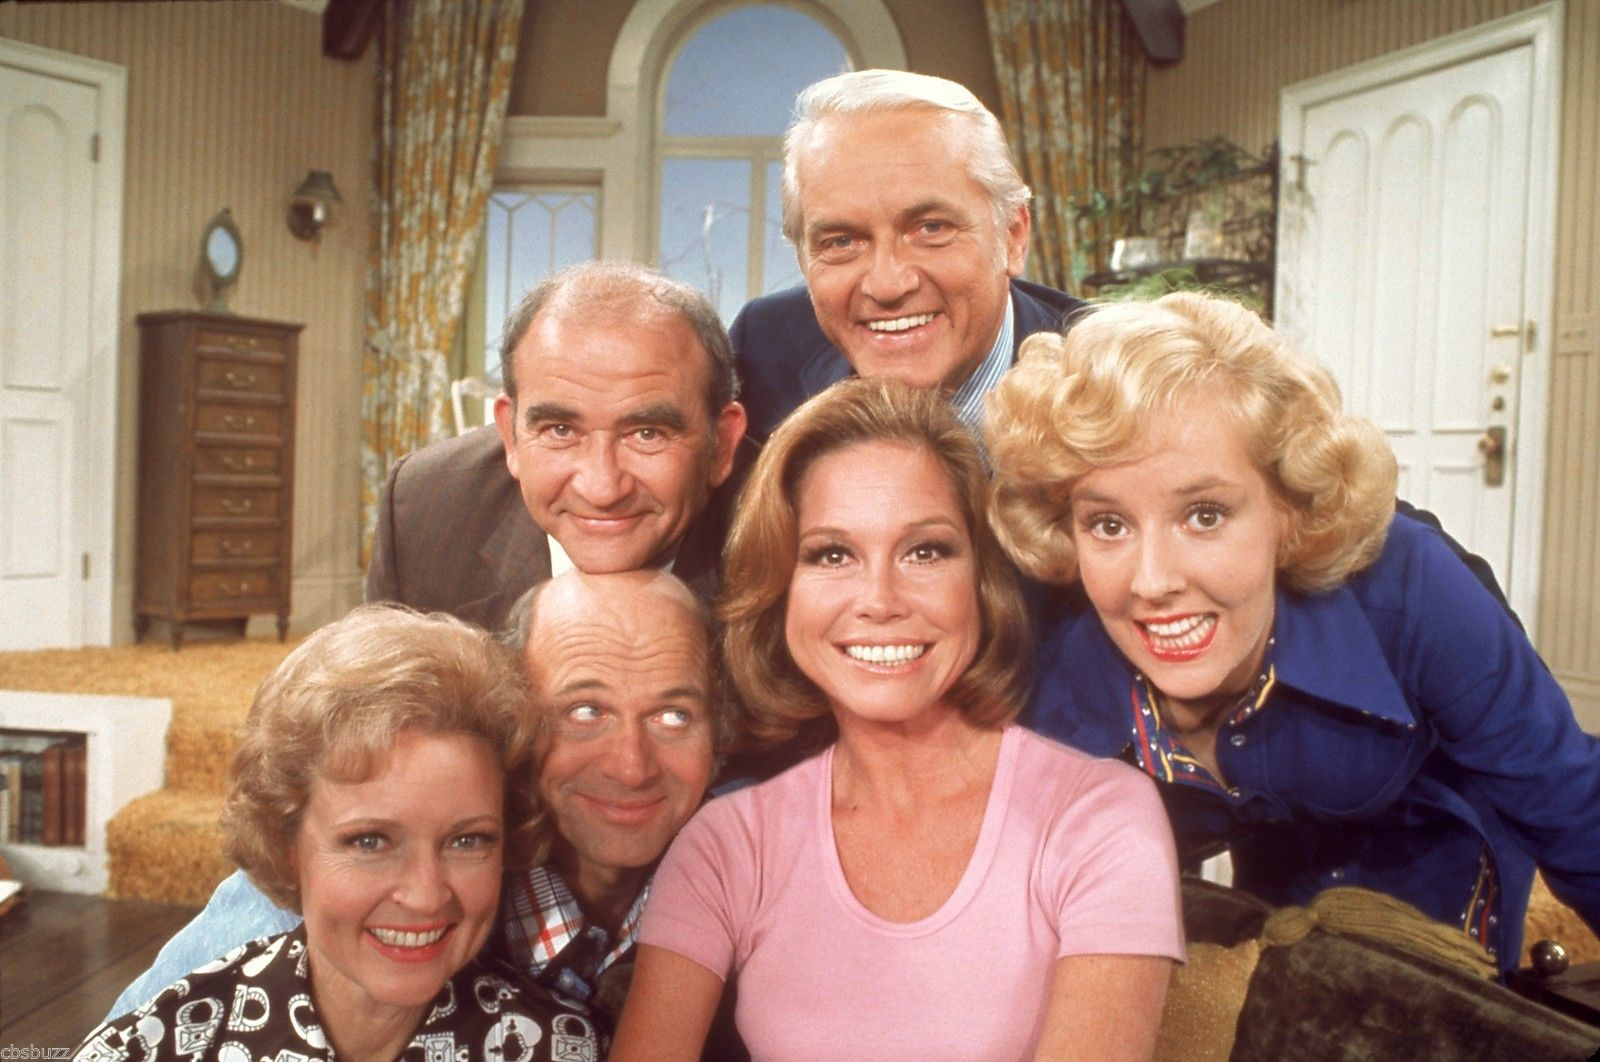 THE_MARY_TYLER_MOORE_SHOW_-_TV_SHOW_PHOTO_105